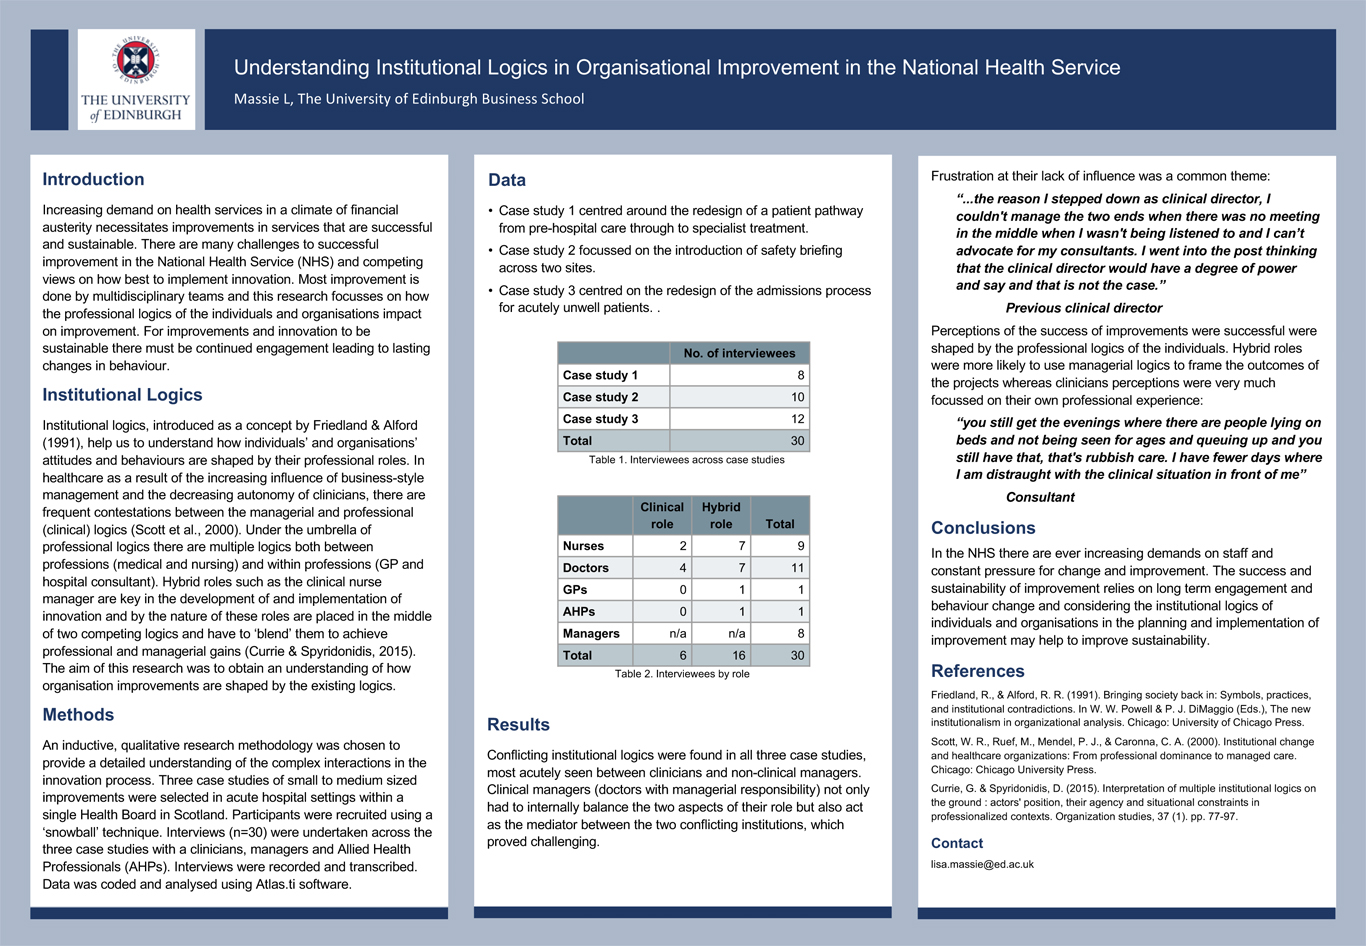 L Massie - Understanding Institutional Logics in Organisational Improvement in the National Health Service